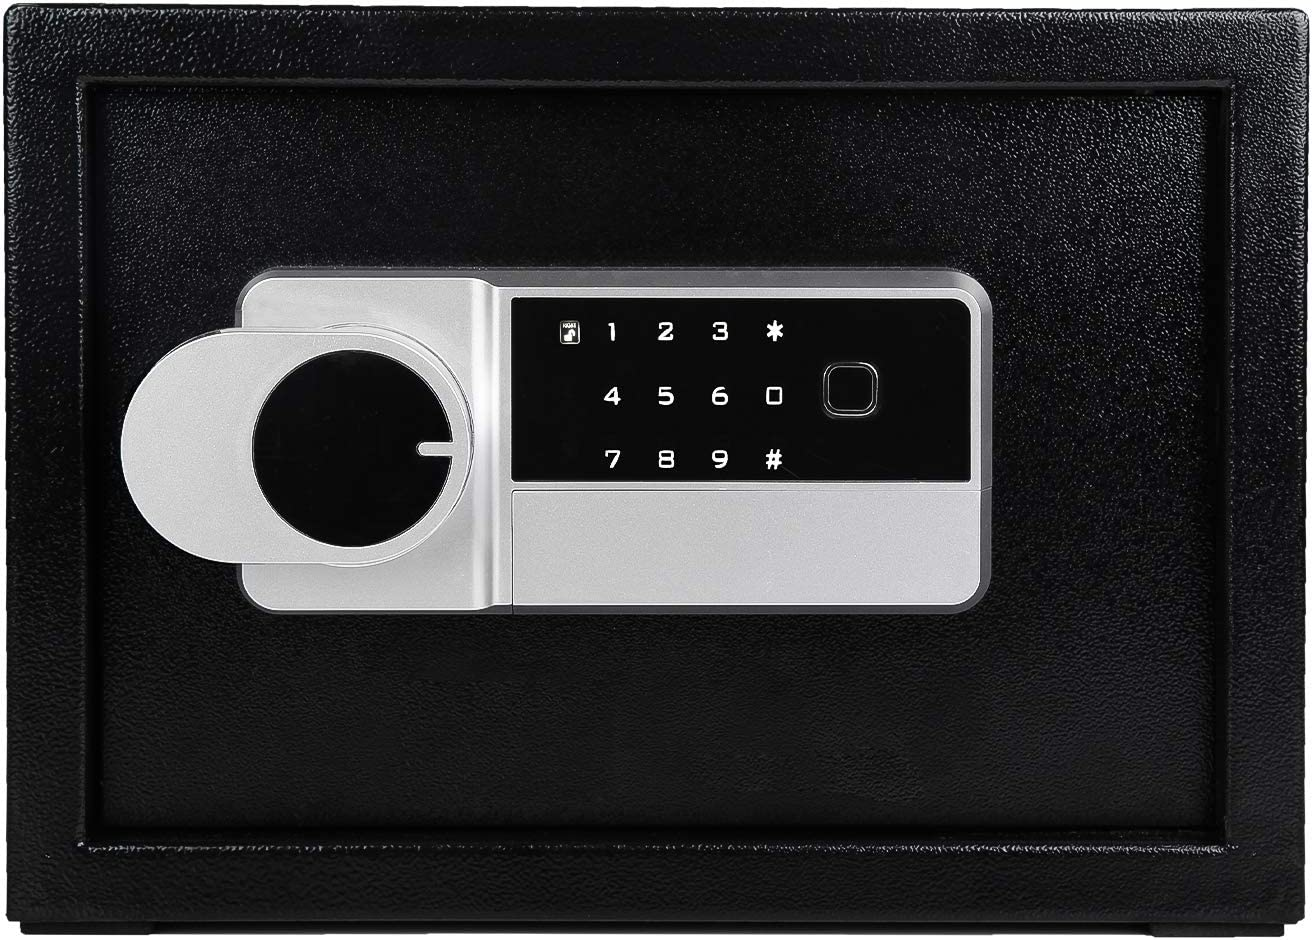 LETTON Security Safe Lock Box, Digital and Fingerprint Lock with Key Lock, Steel Safe, Home Safe for Storing Jewelry Cash Valuables, Safe Box Black - 13.8 x 9.8 x 10 Inches